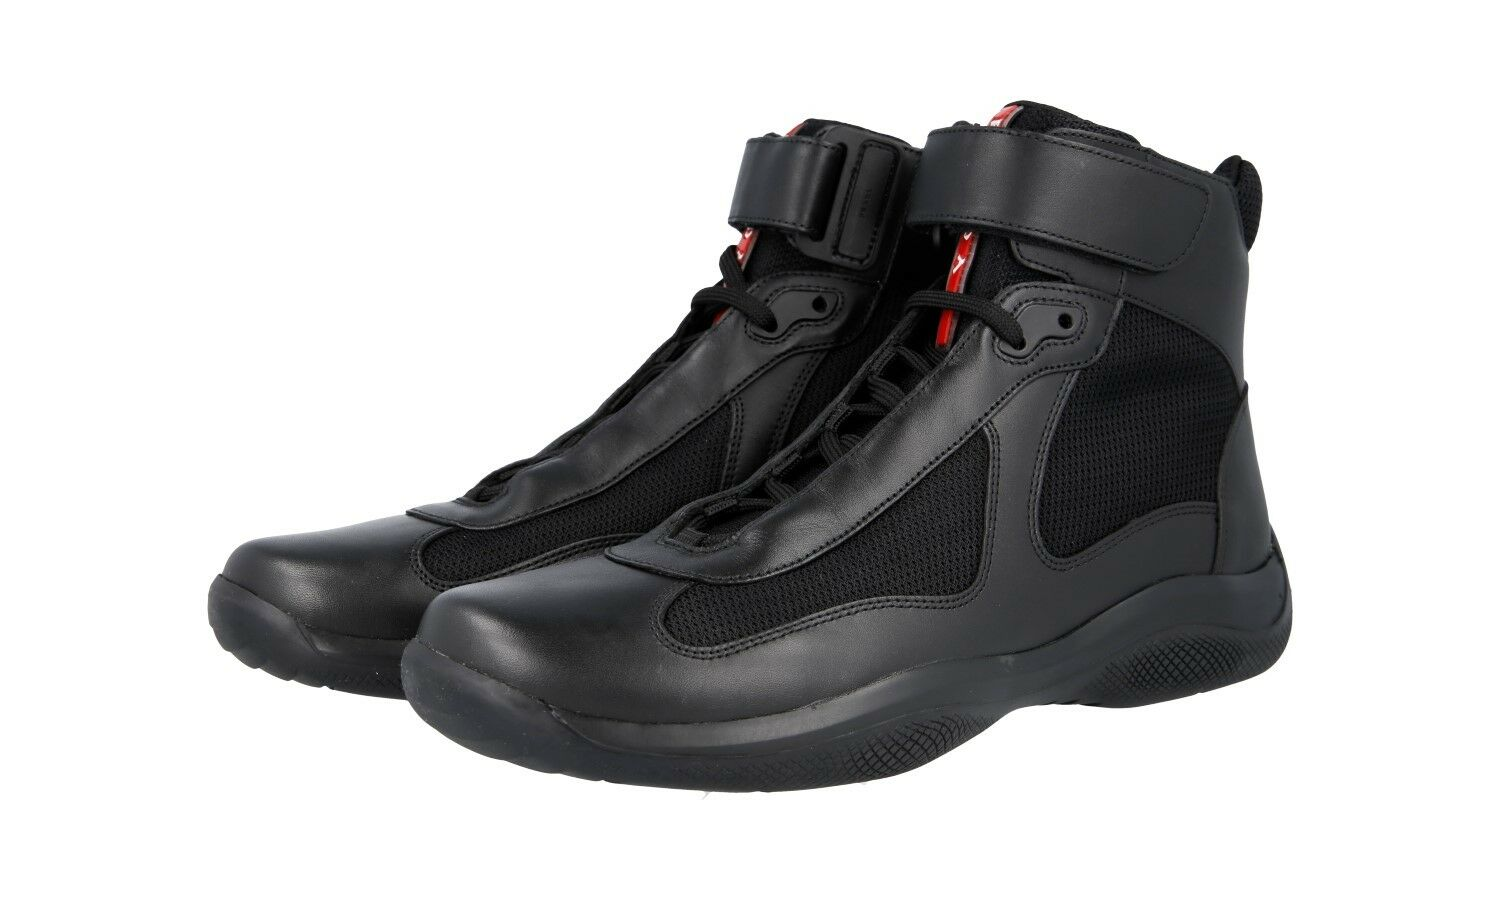 shoes HIGH-TOP SNEAKER PRADA LUXUEUX 4T0341 black NOUVEAUX 7 41 41,5